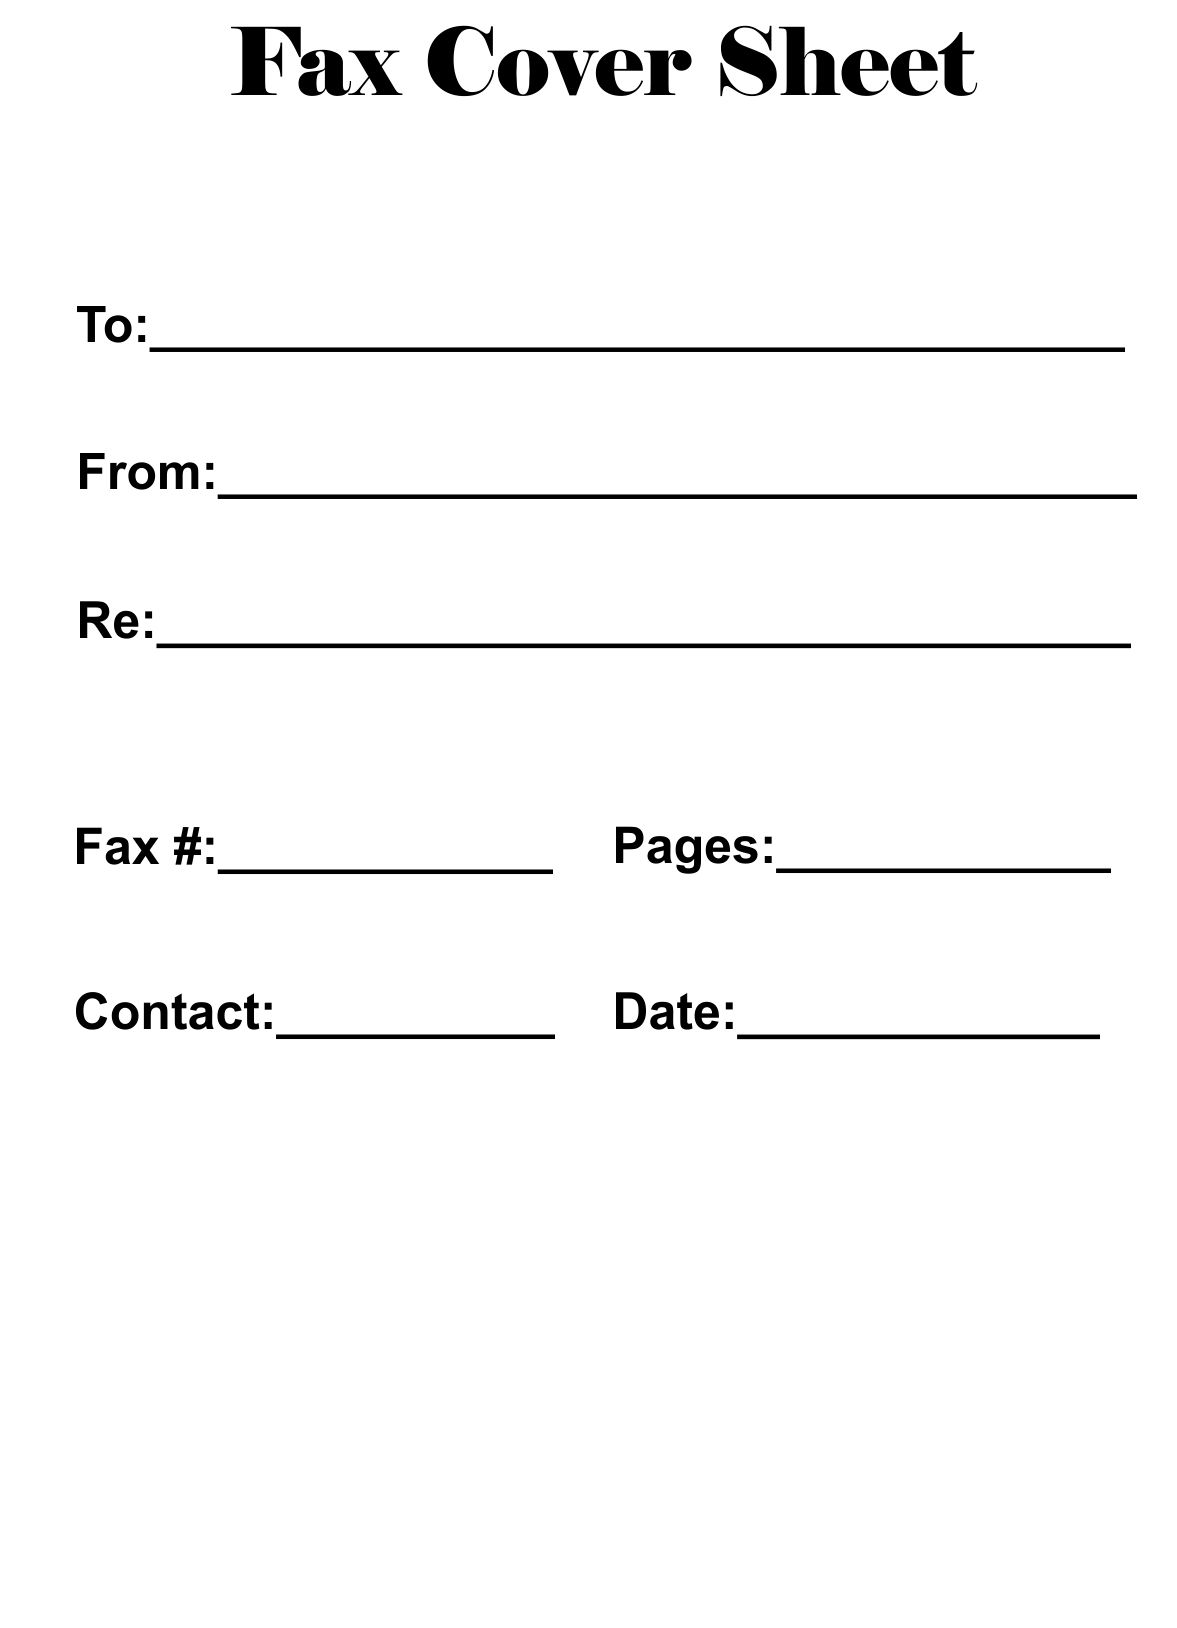 Free Printable Fax Cover Sheet Template Pdf Word Excel In 2020